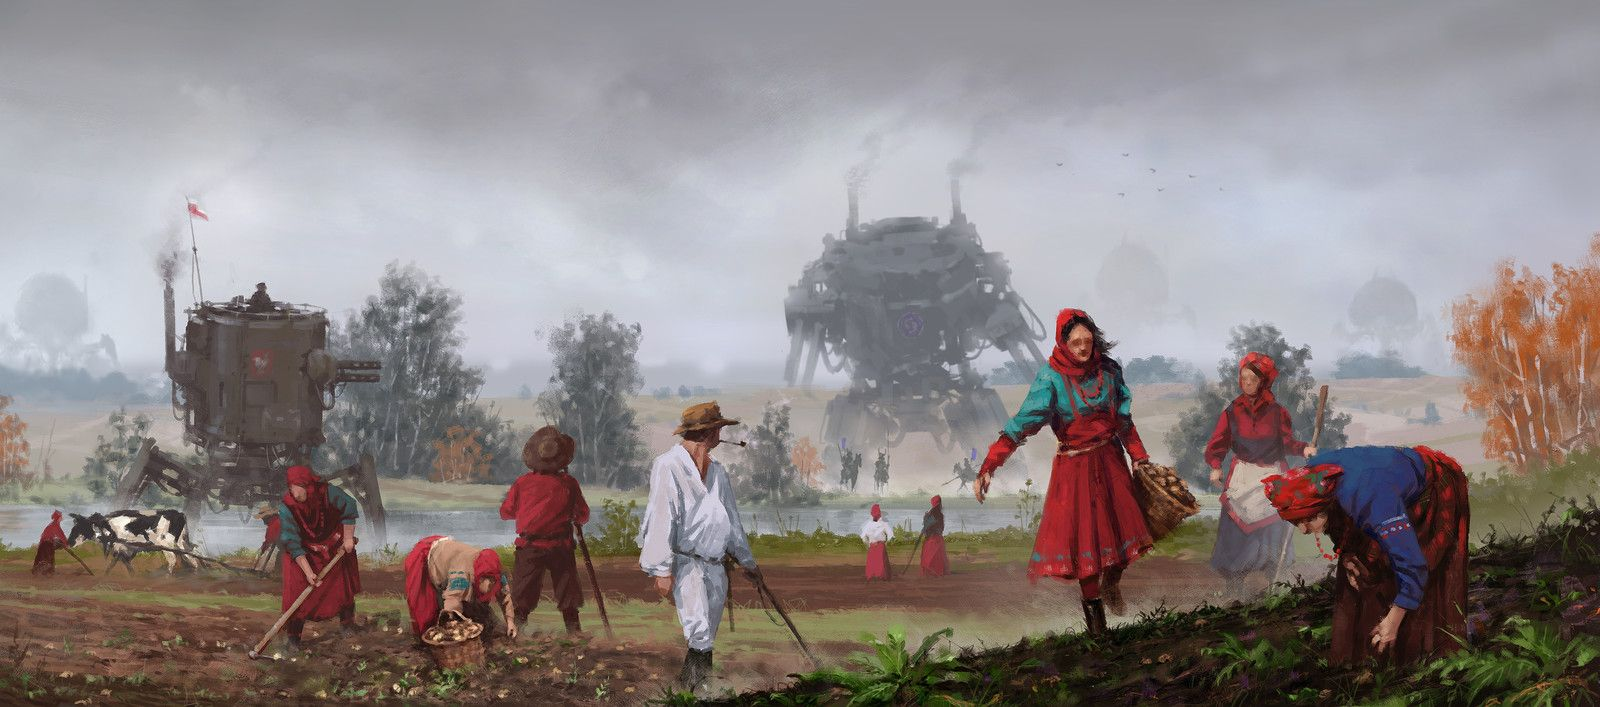 1920 invaders from afar, Jakub Rozalski on ArtStation at